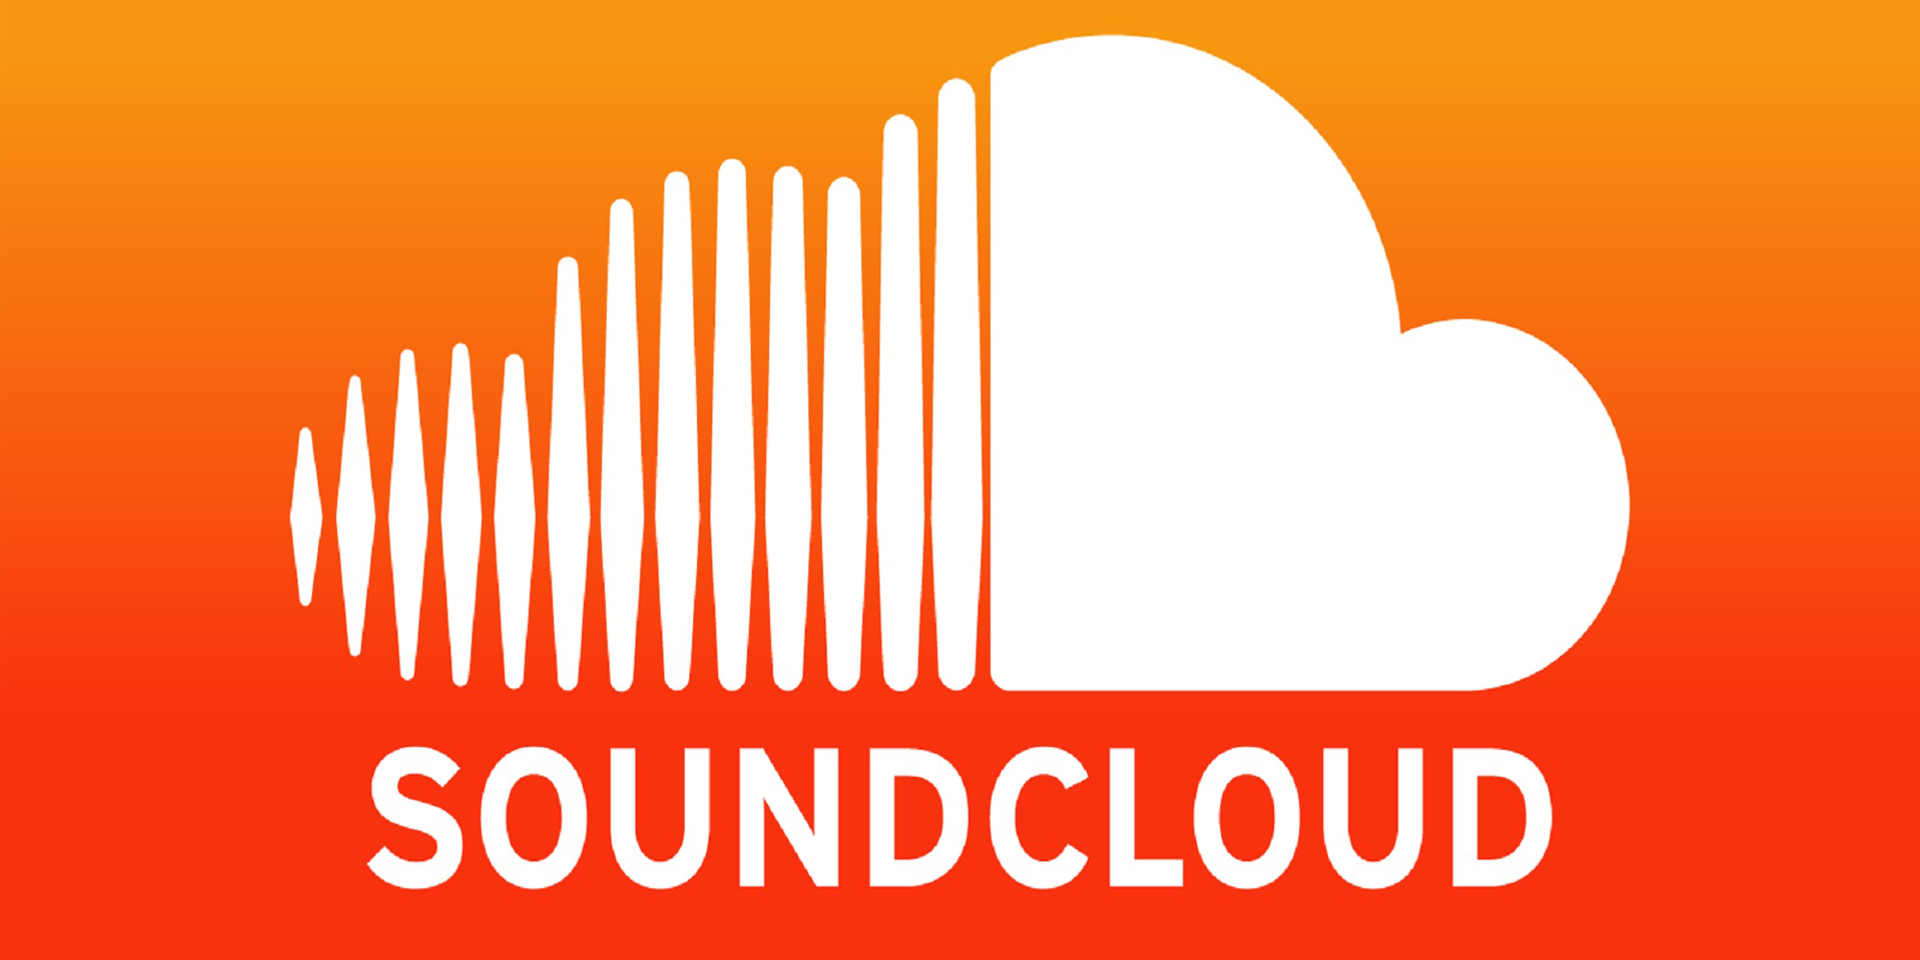 SoundCloud announces new fan-powered royalties system based on monthly listeners